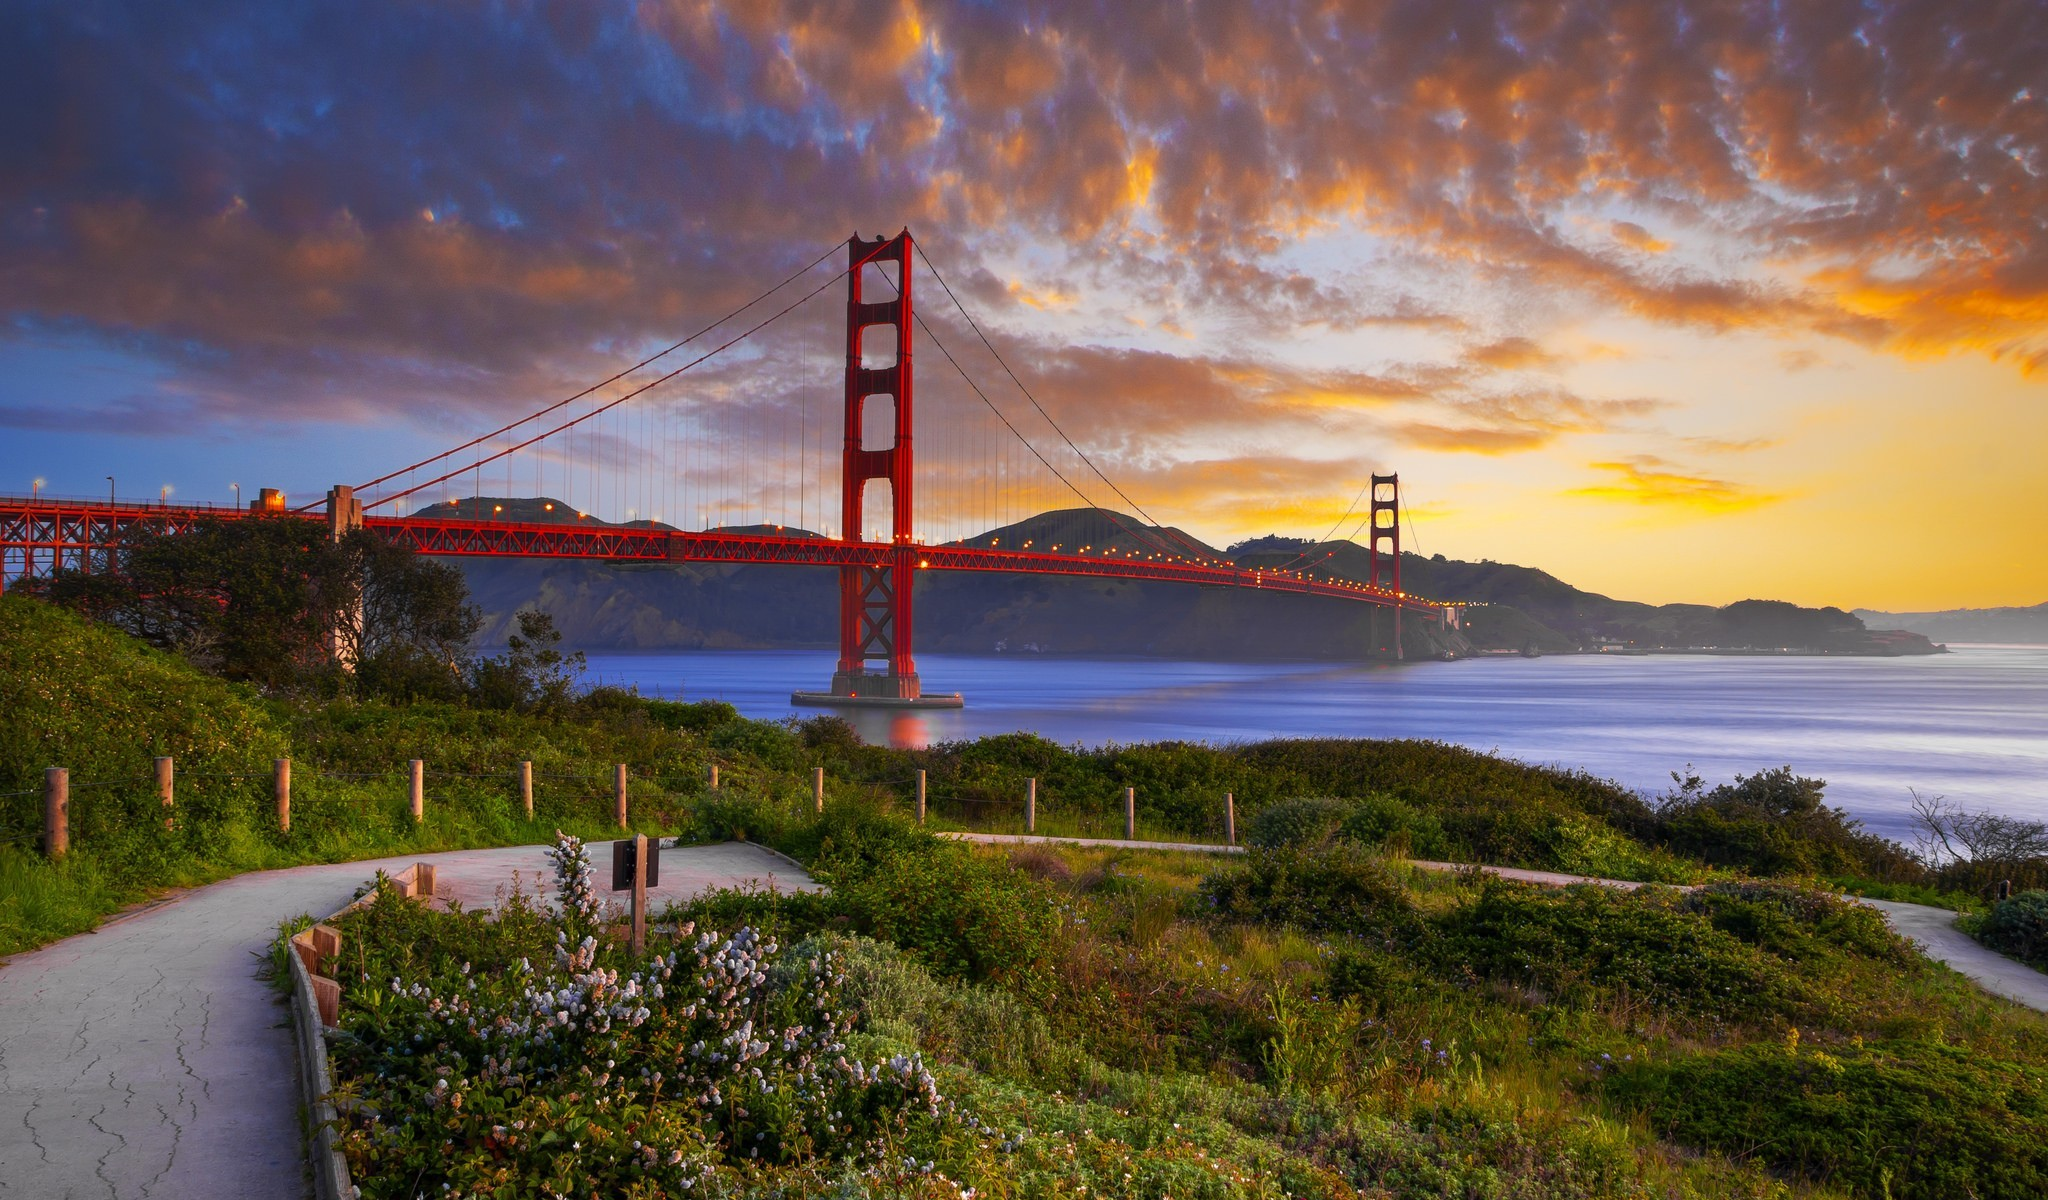 Golden gate hd wallpaper background image 2048x1200 id 541663 wallpaper abyss - San francisco hd ...